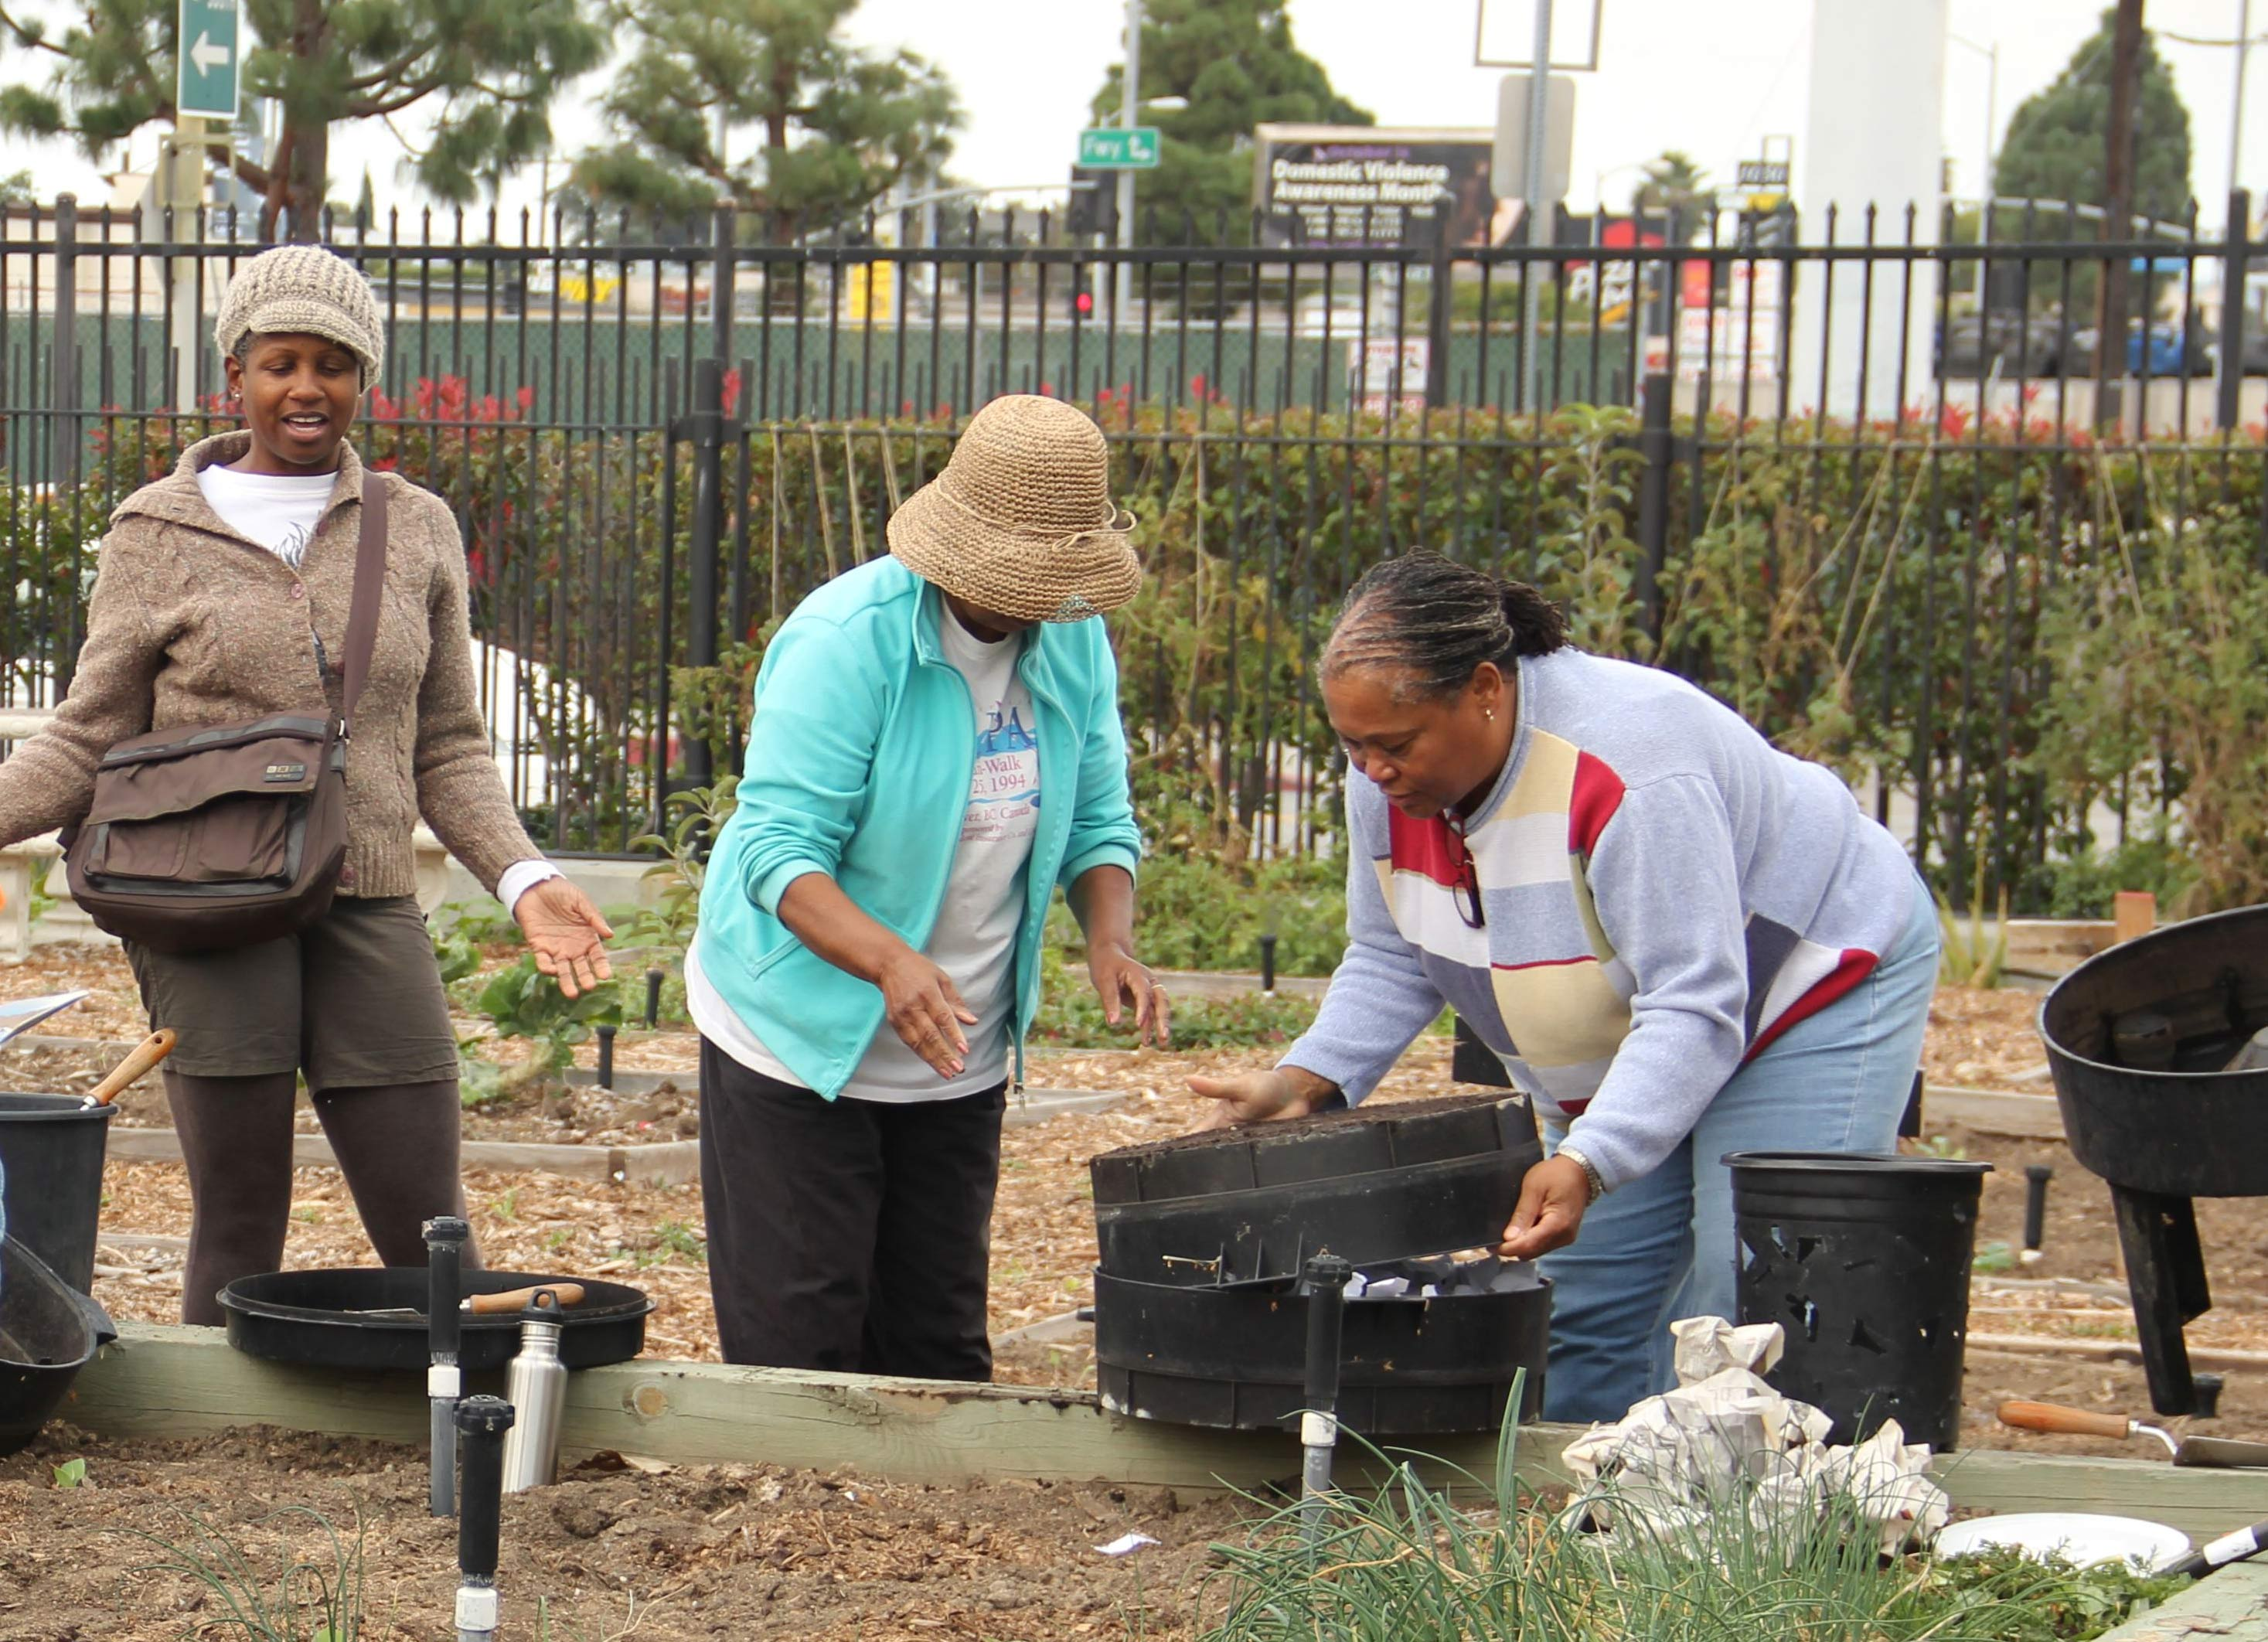 As part of the the Garden Gateway Nutrition Program, residents of South Los Angeles prepare edible gardens at a local community garden. (Photo/Zhiyi Feng)